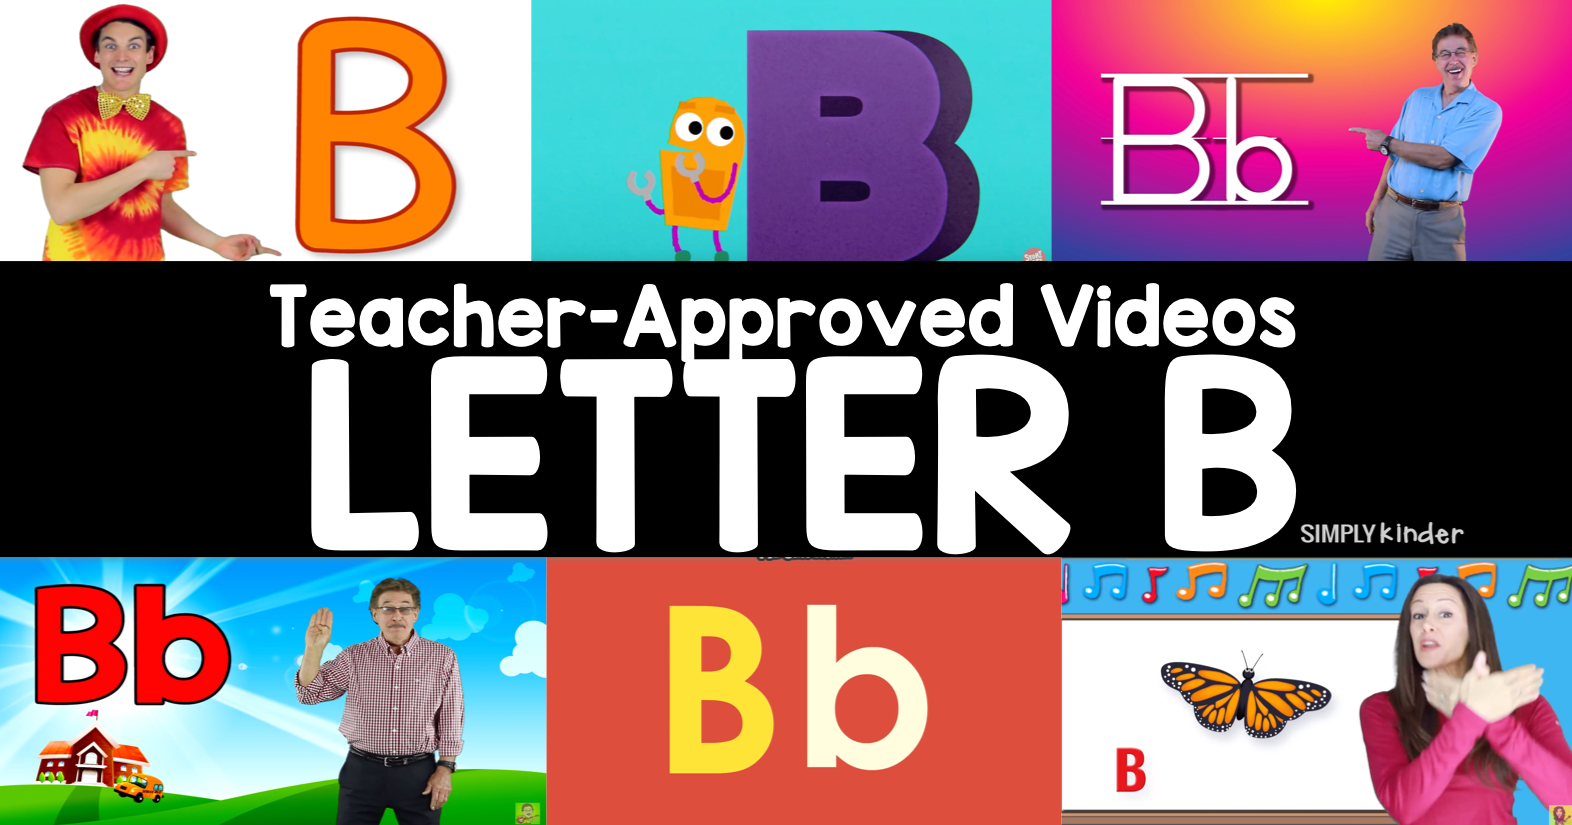 Teacher-Approved Videos Letter B